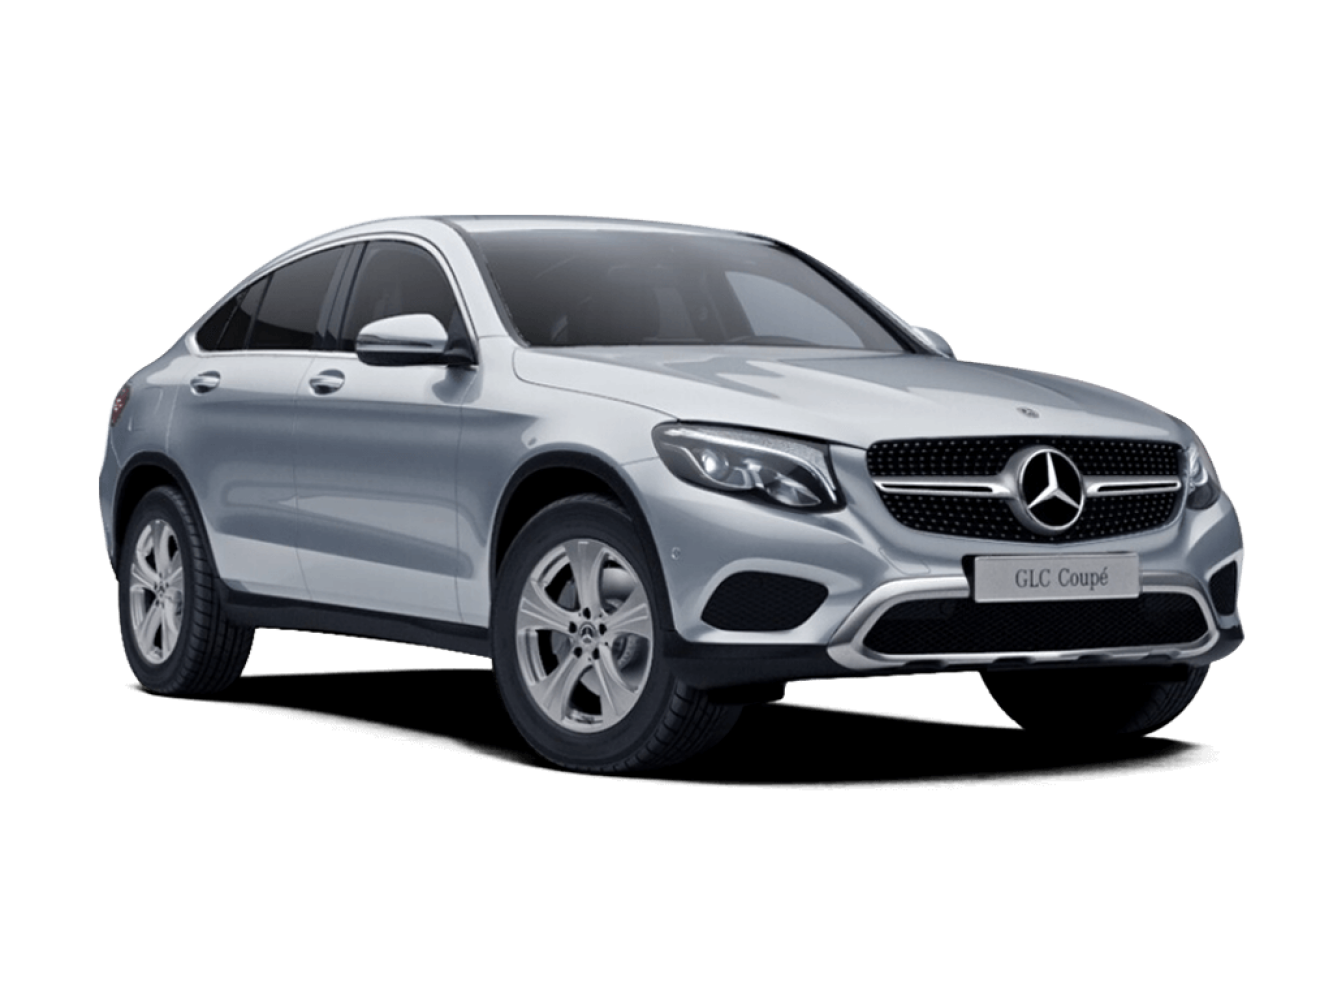 new mercedes benz glc coupe glc 250d 4matic amg line. Black Bedroom Furniture Sets. Home Design Ideas